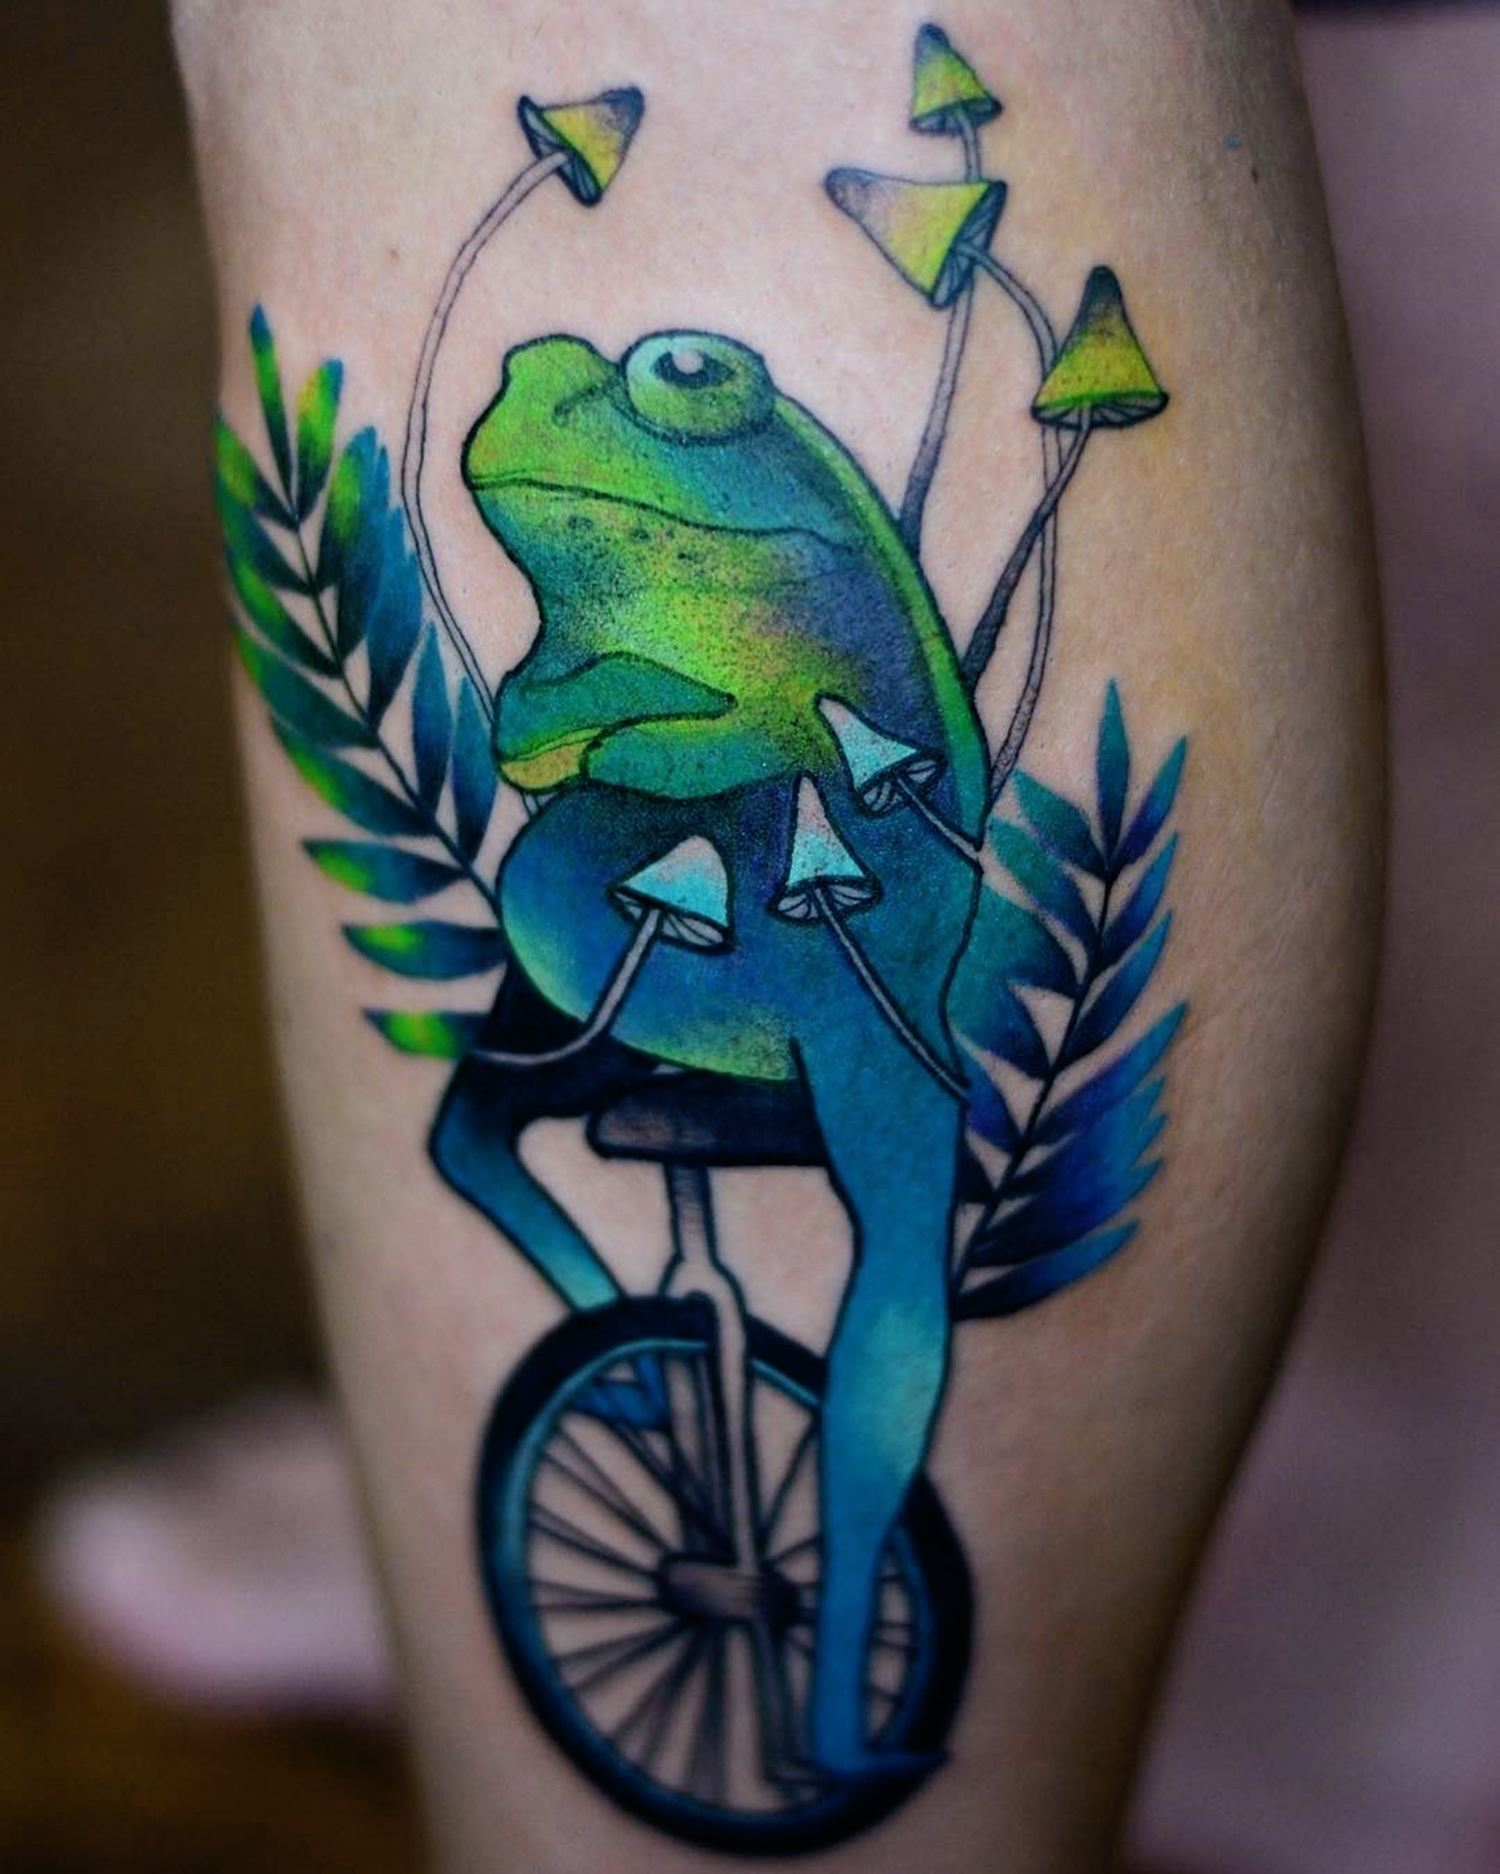 green frog on unicycle tattoo and mushrooms